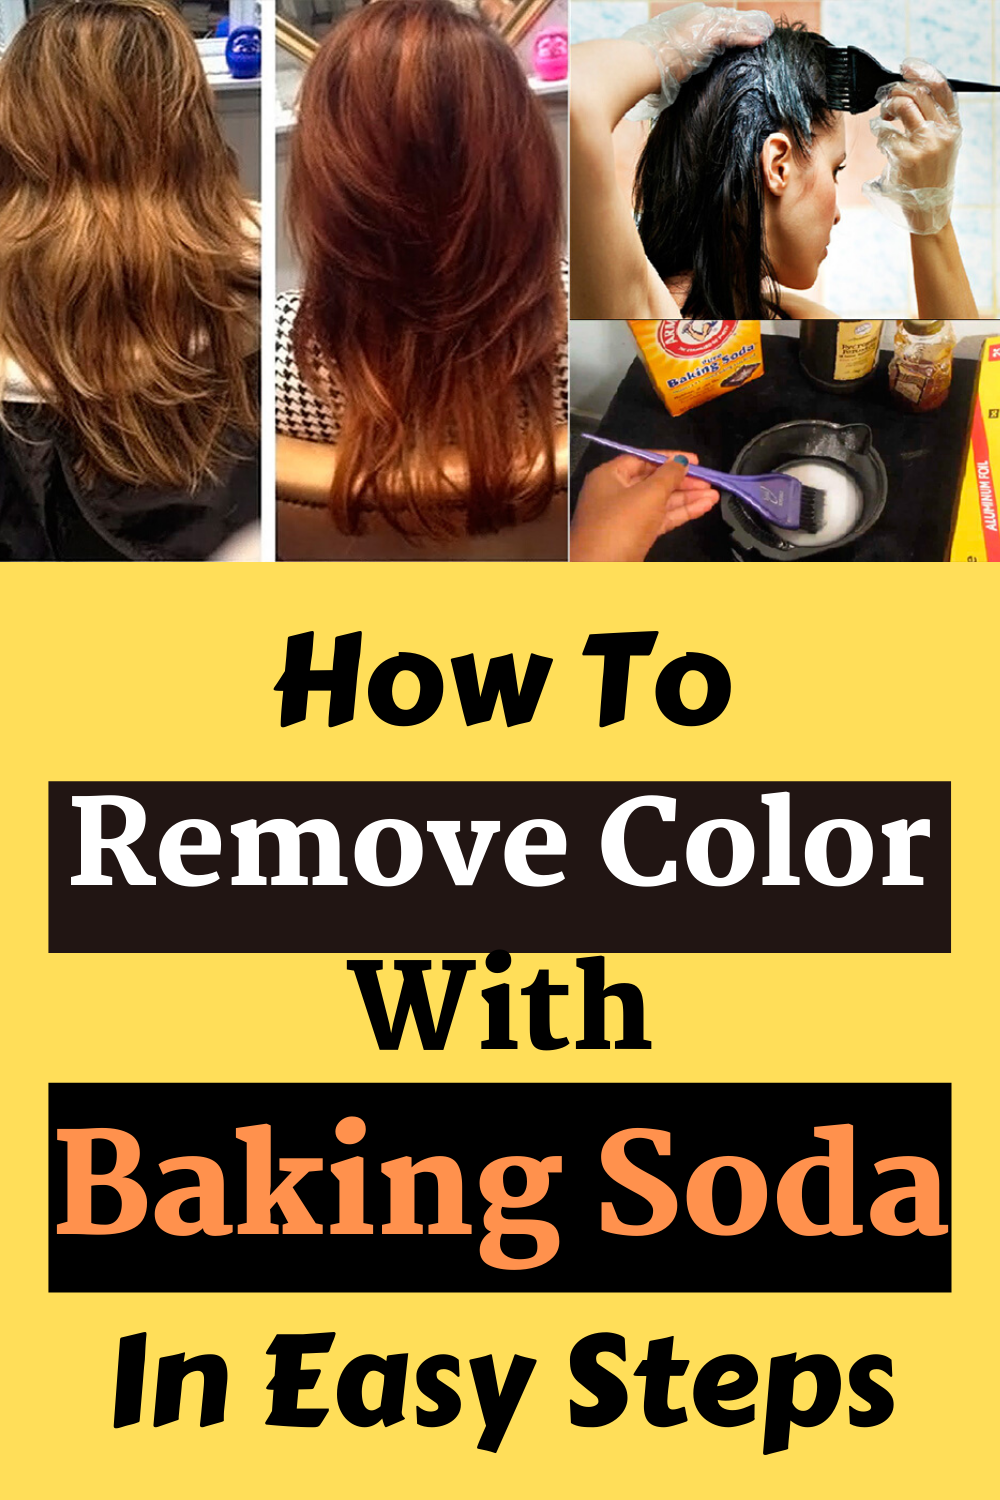 How To Remove Color With Baking Soda In Easy Steps In 2020 Lighten Hair Naturally Natural Hair Colour Remover Hair Dye Removal